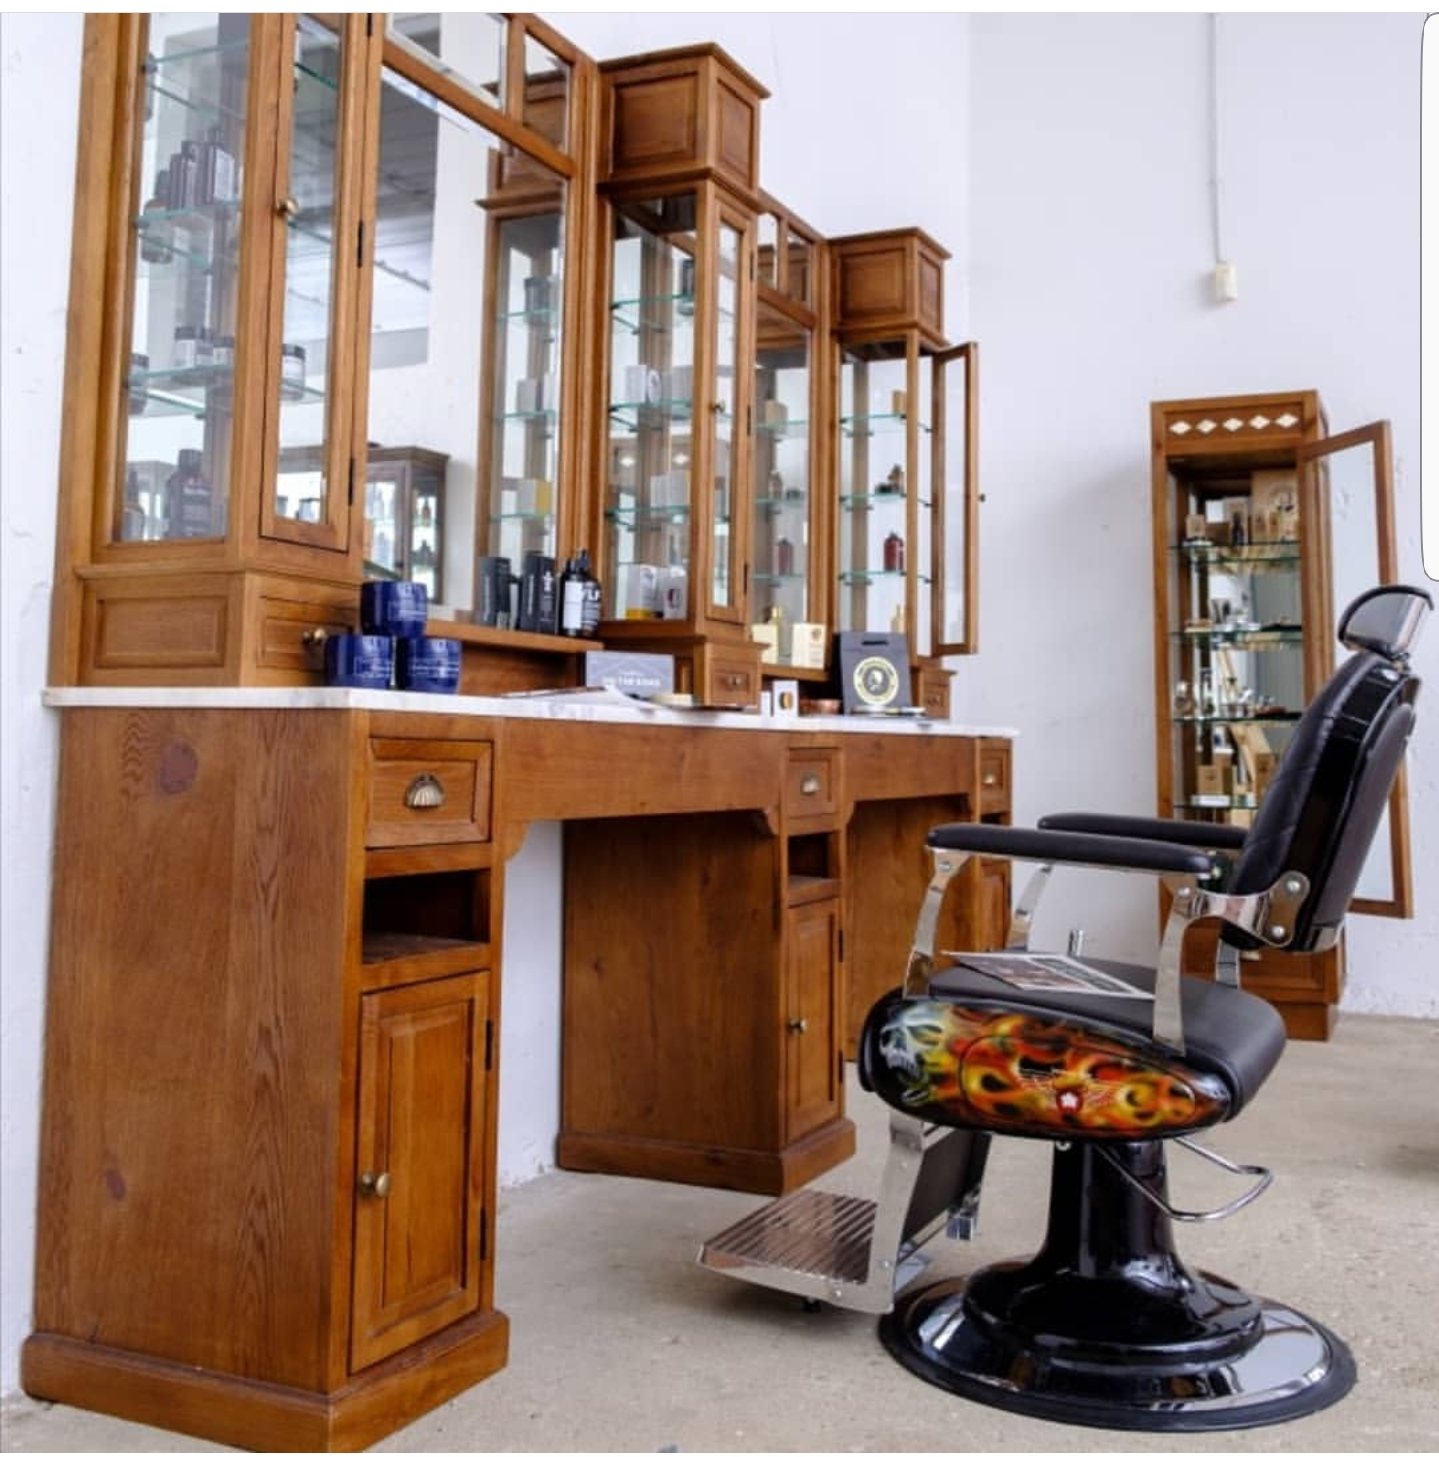 Solid wood barber furniture   Oak wood barberstations made from only the finest materials   Worldwide delivery   Handmade barbersfurniture   Salon furniture   Oldschool barberunits